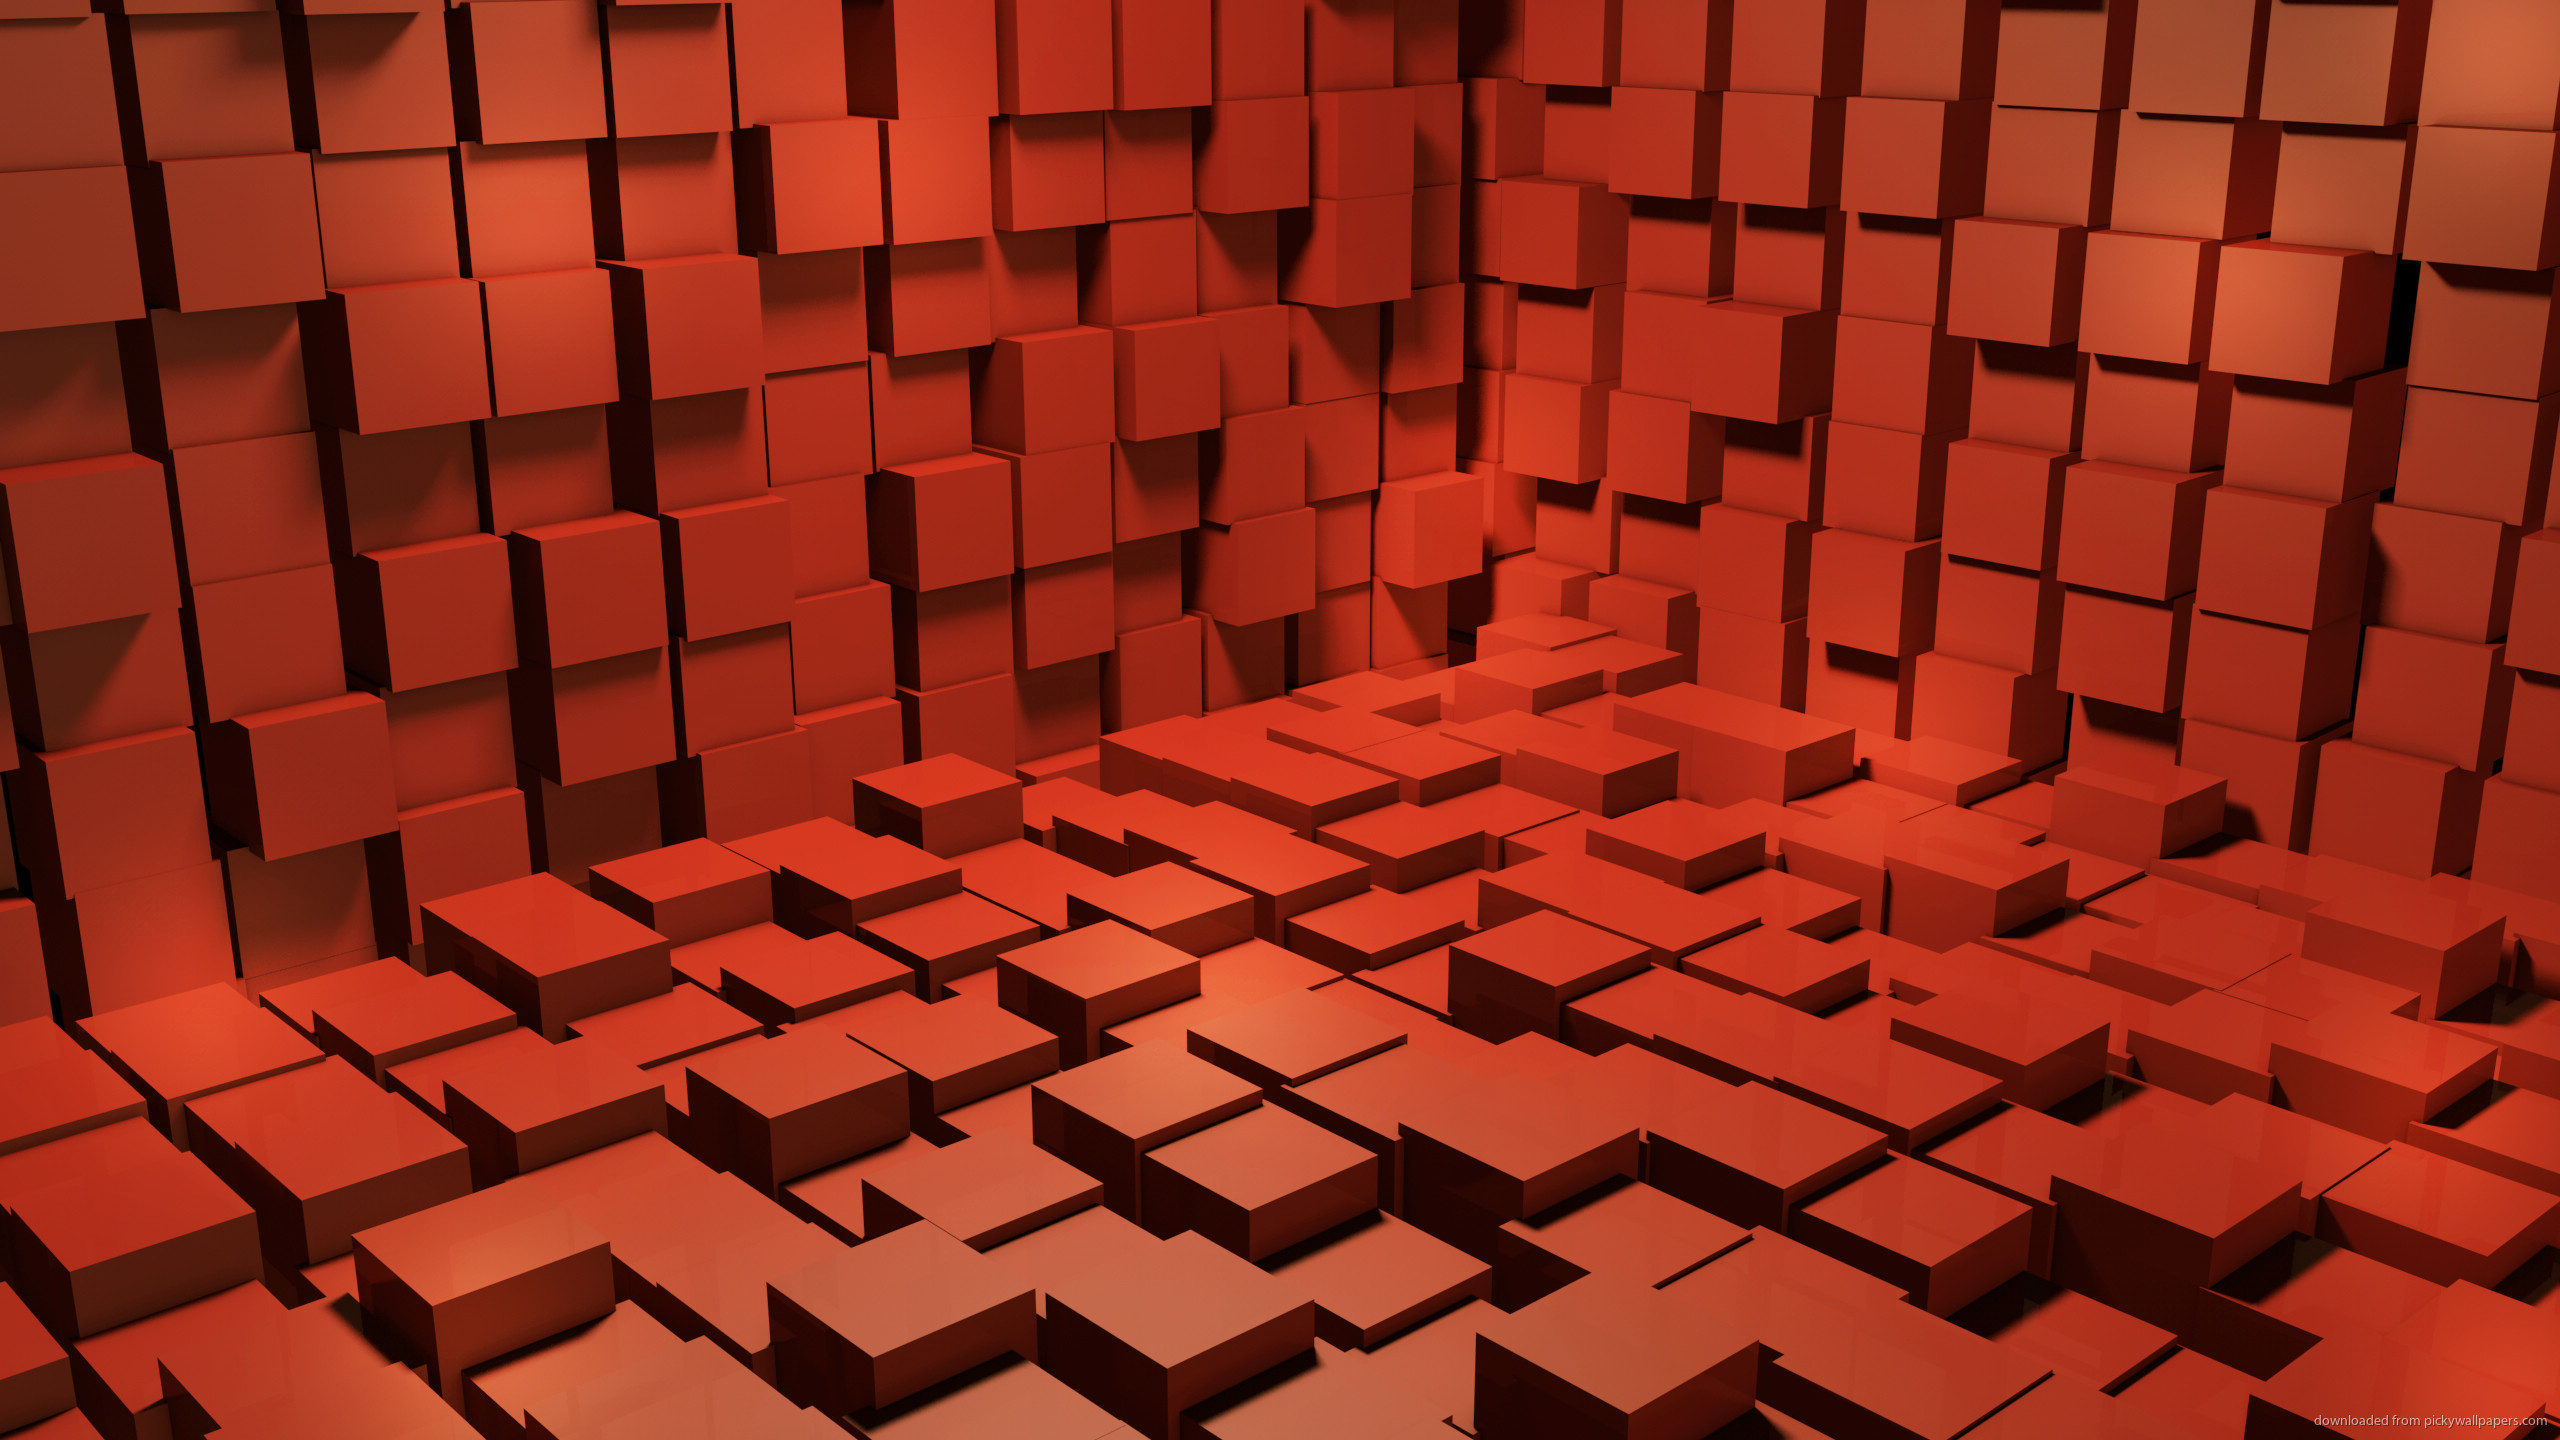 2560x1440 Red 3D Cubes Wallpaper Background for